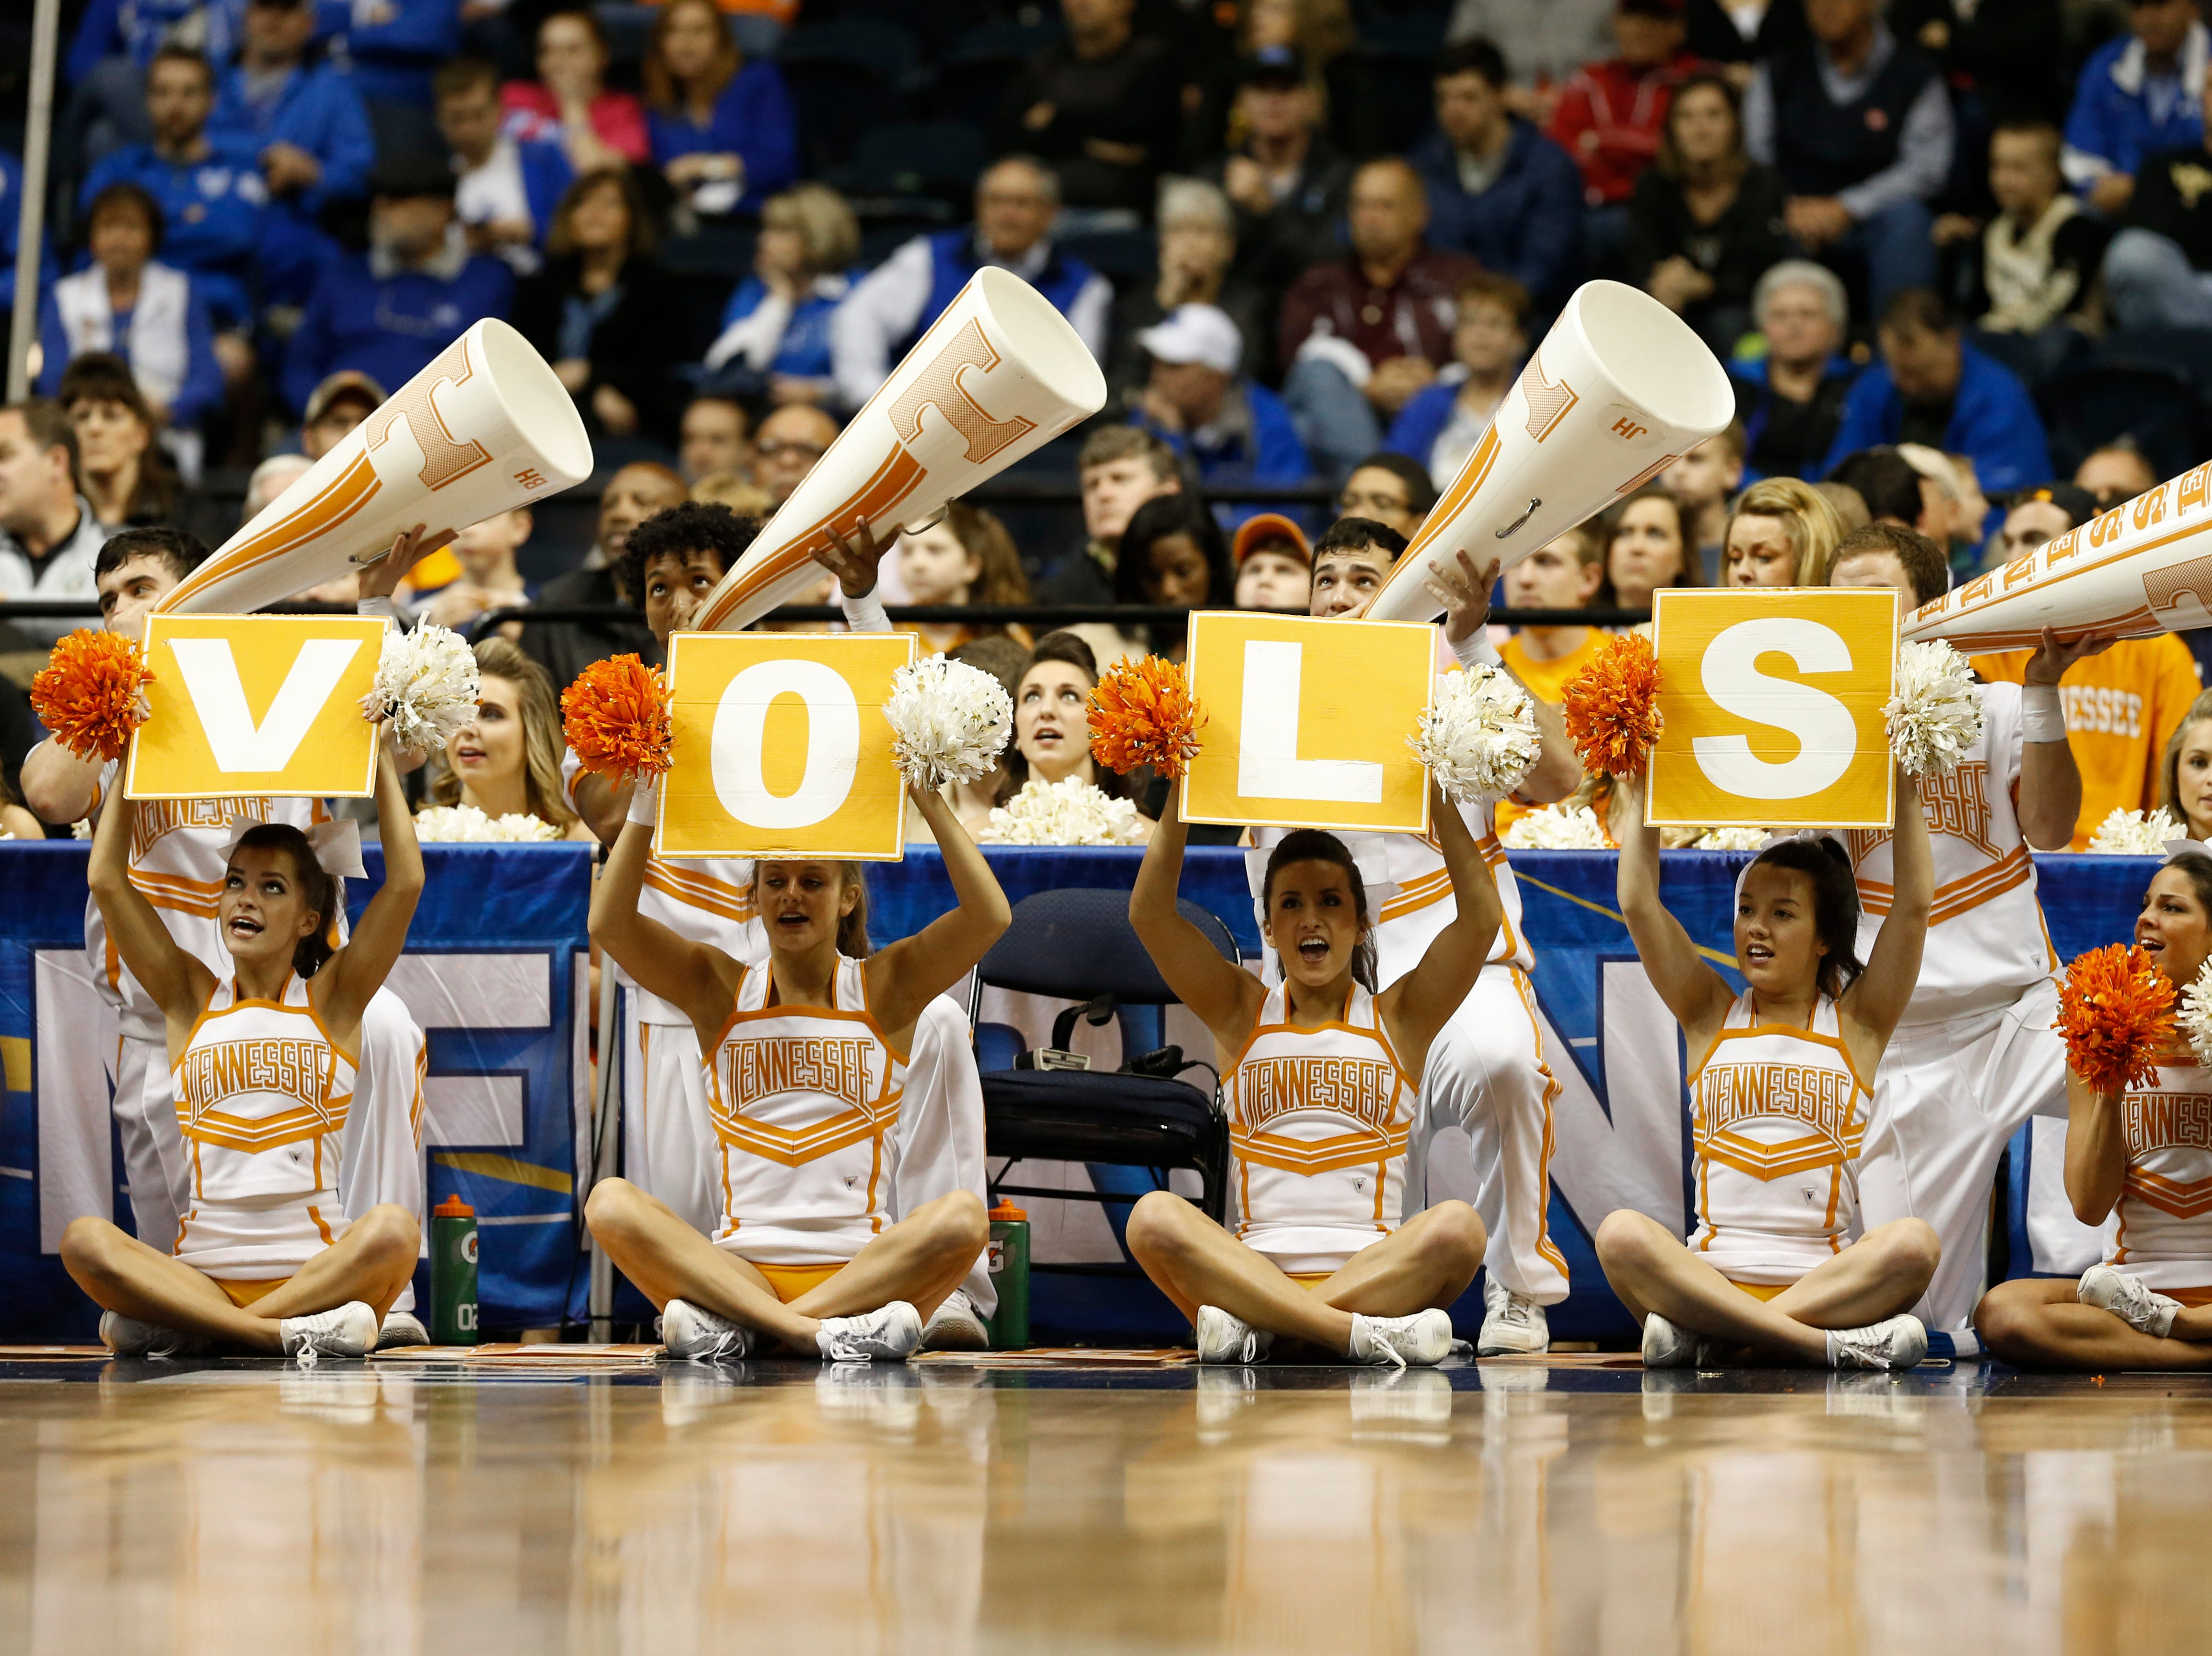 Tennessee cheerleaders perform during the second half of an NCAA college basketball game in the second round of the Southeastern Conference tournament between Tennessee and Vanderbilt, Thursday, March 12, 2015, in Nashville, Tenn. (AP Photo/Steve Helber)